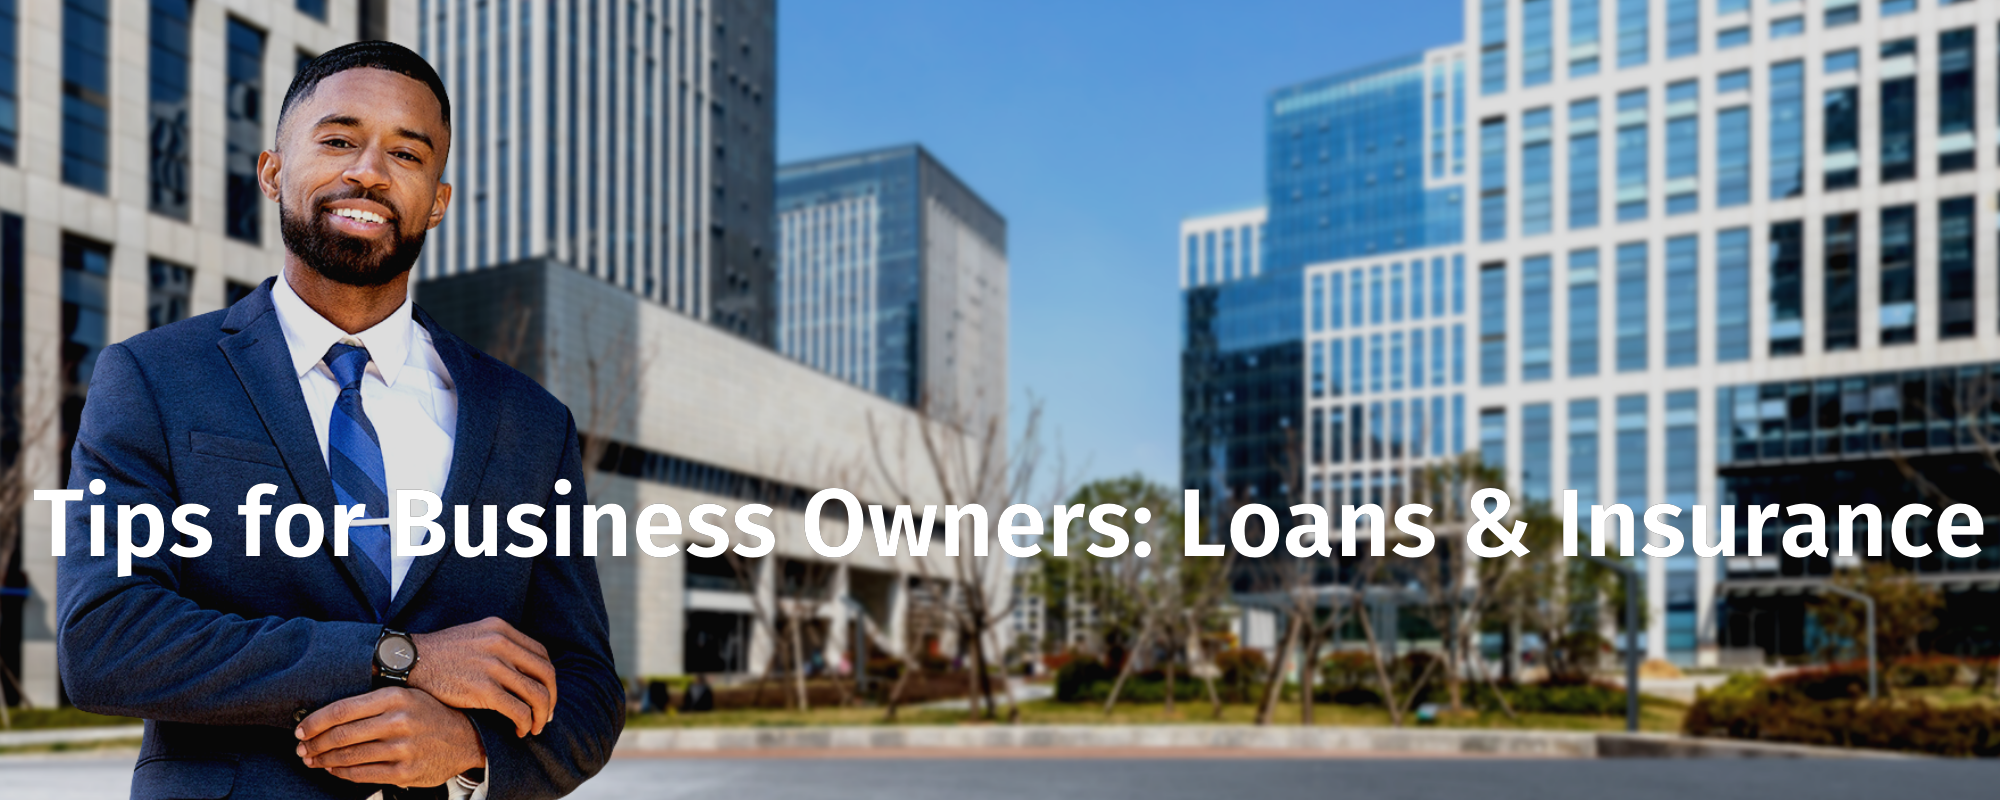 Tips for Business Owners: Loans & Insurance